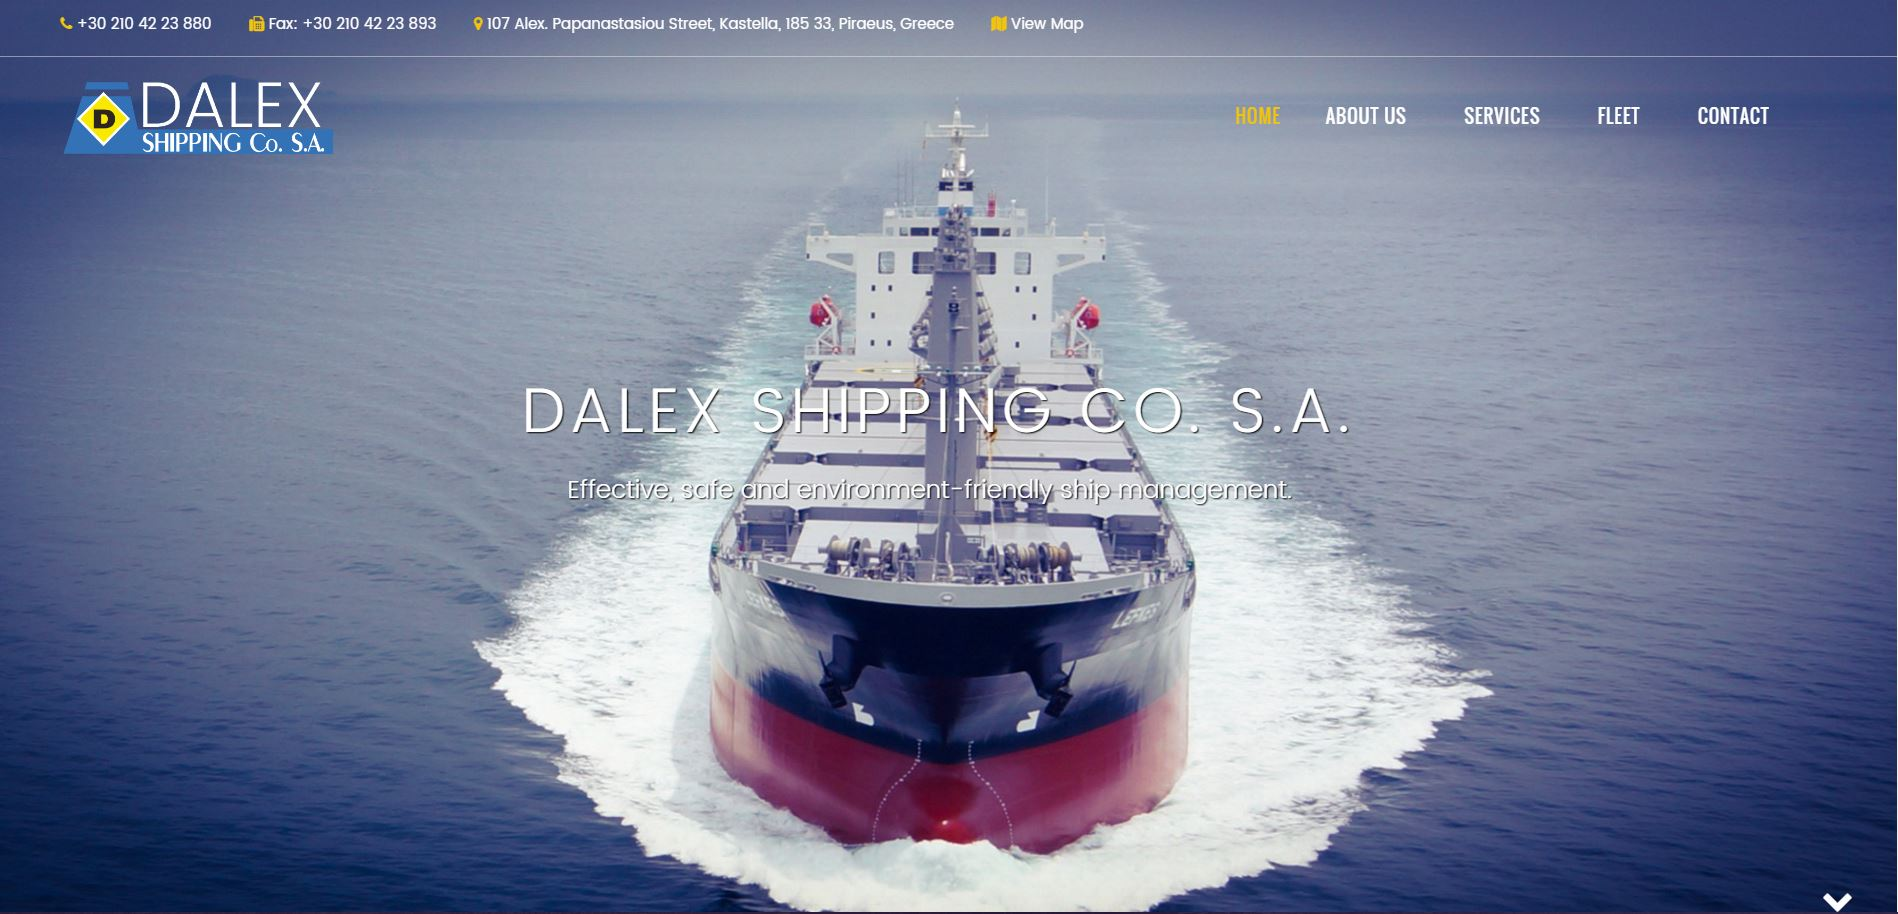 DALEX SHIPPING CO. S.A.